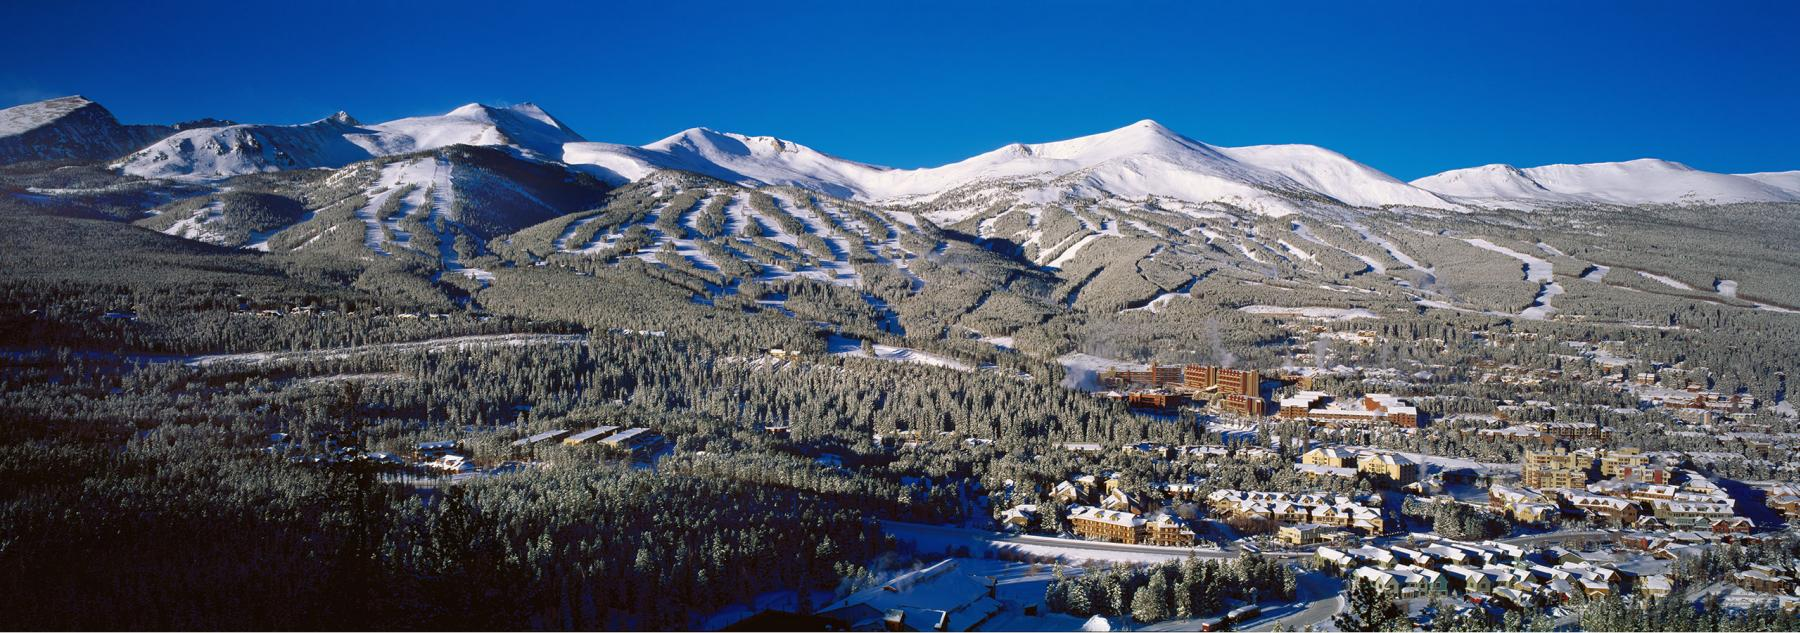 Breckenridge Panorama